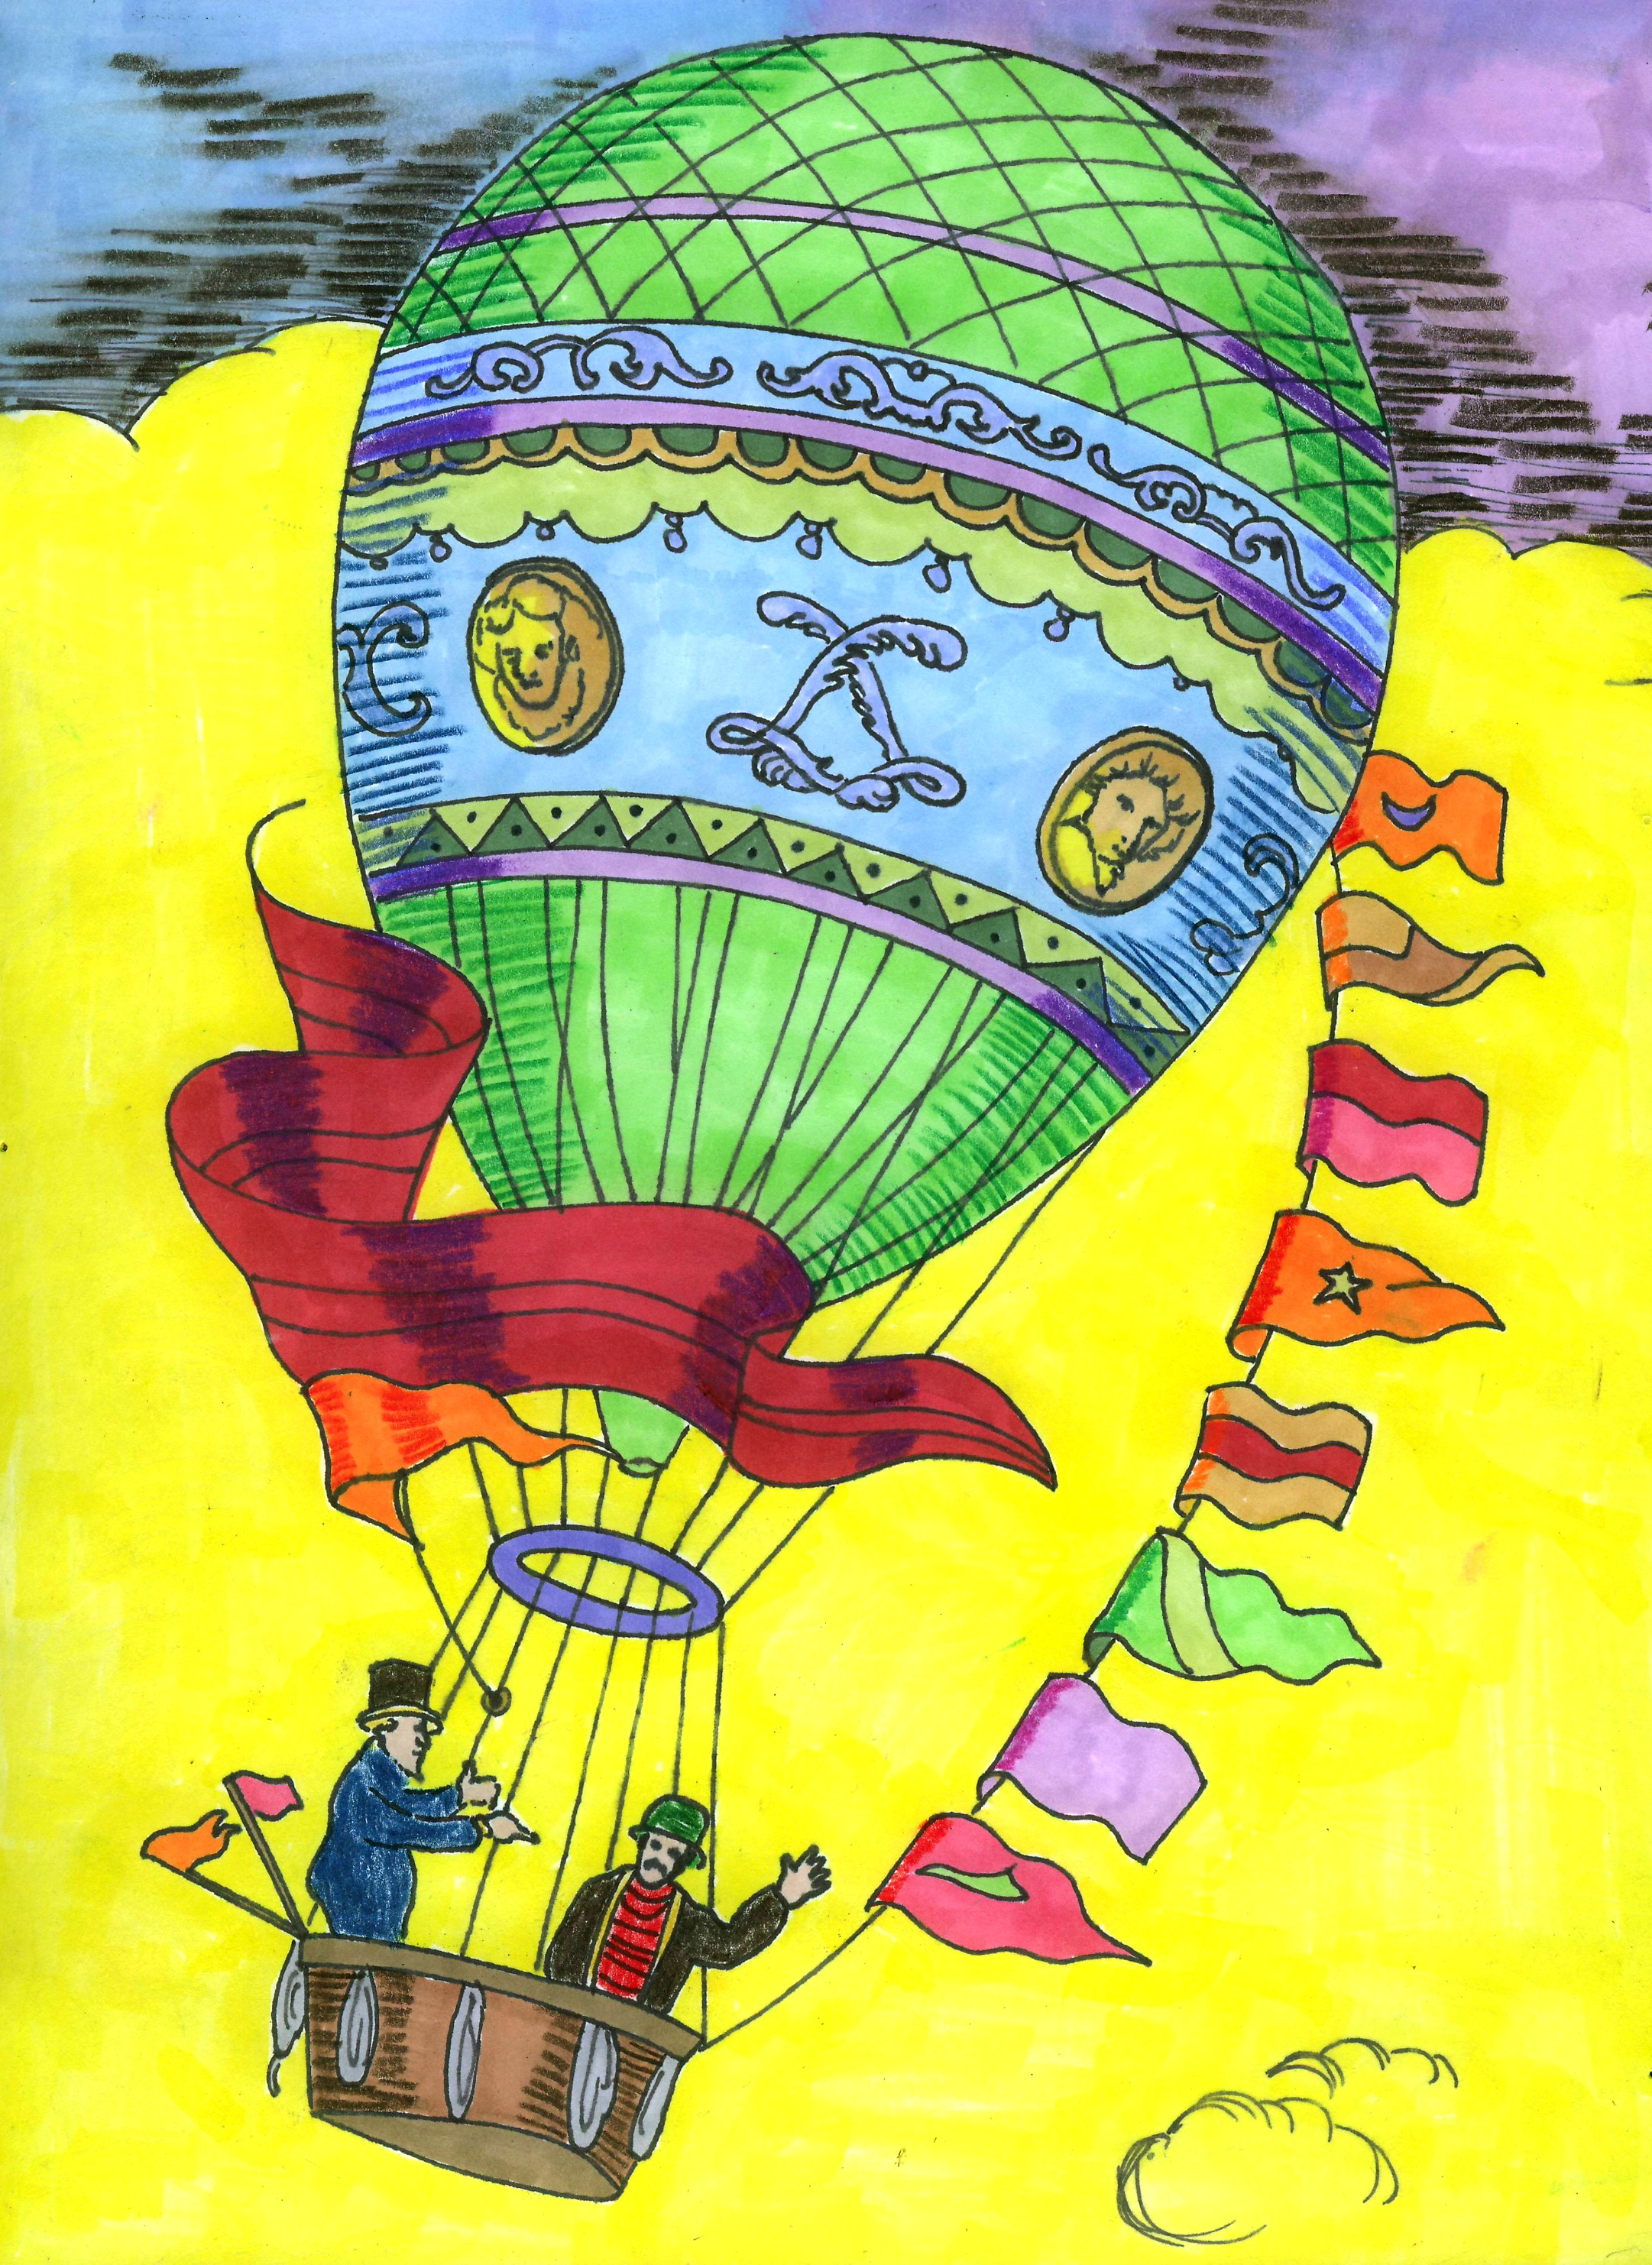 Balloon example 2